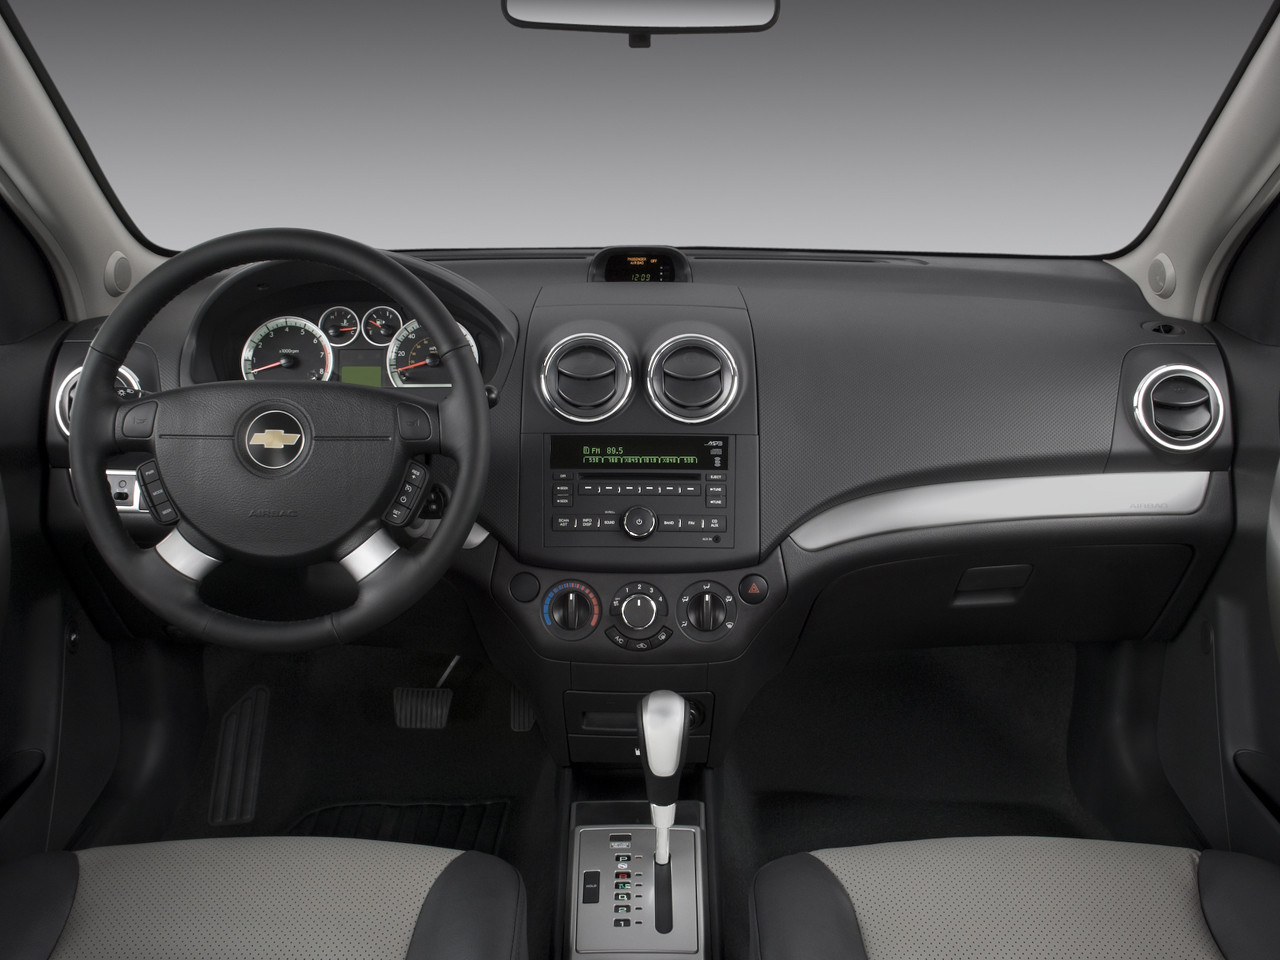 2008 chevy aveo sedan interior